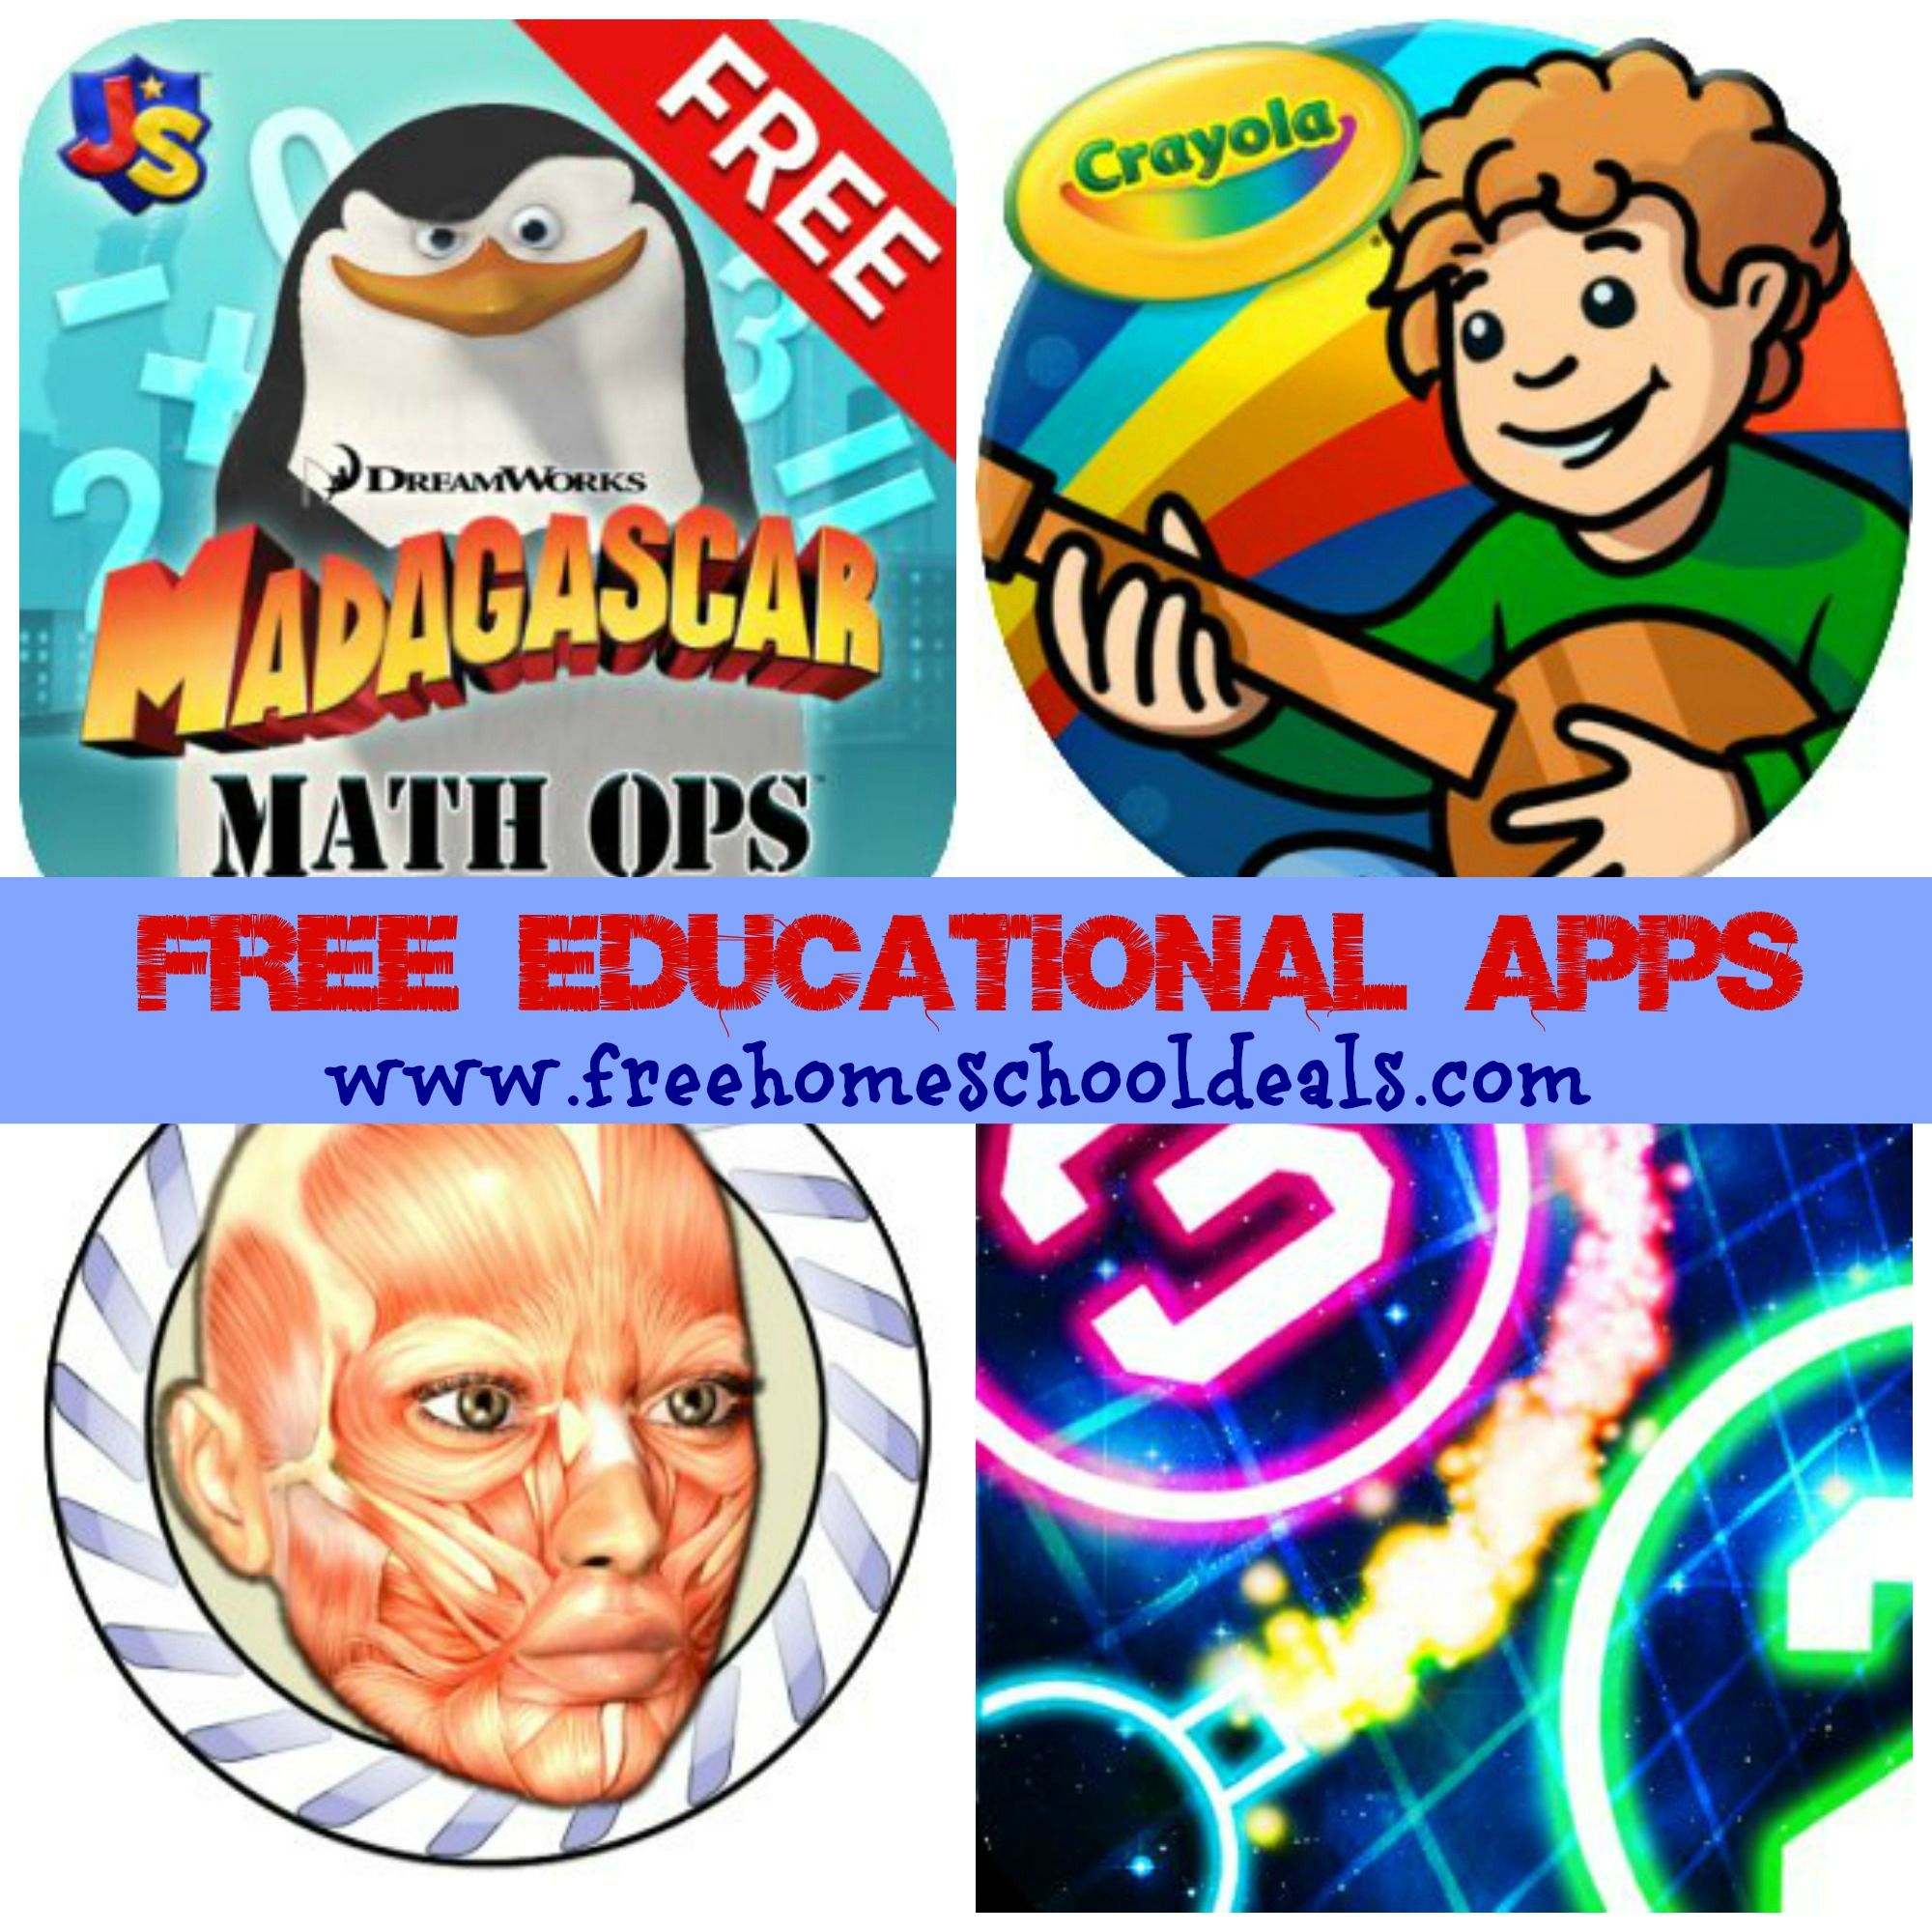 FREE Educational Apps for Kids: Speed Anatomy, Madagascar Math Ops ...